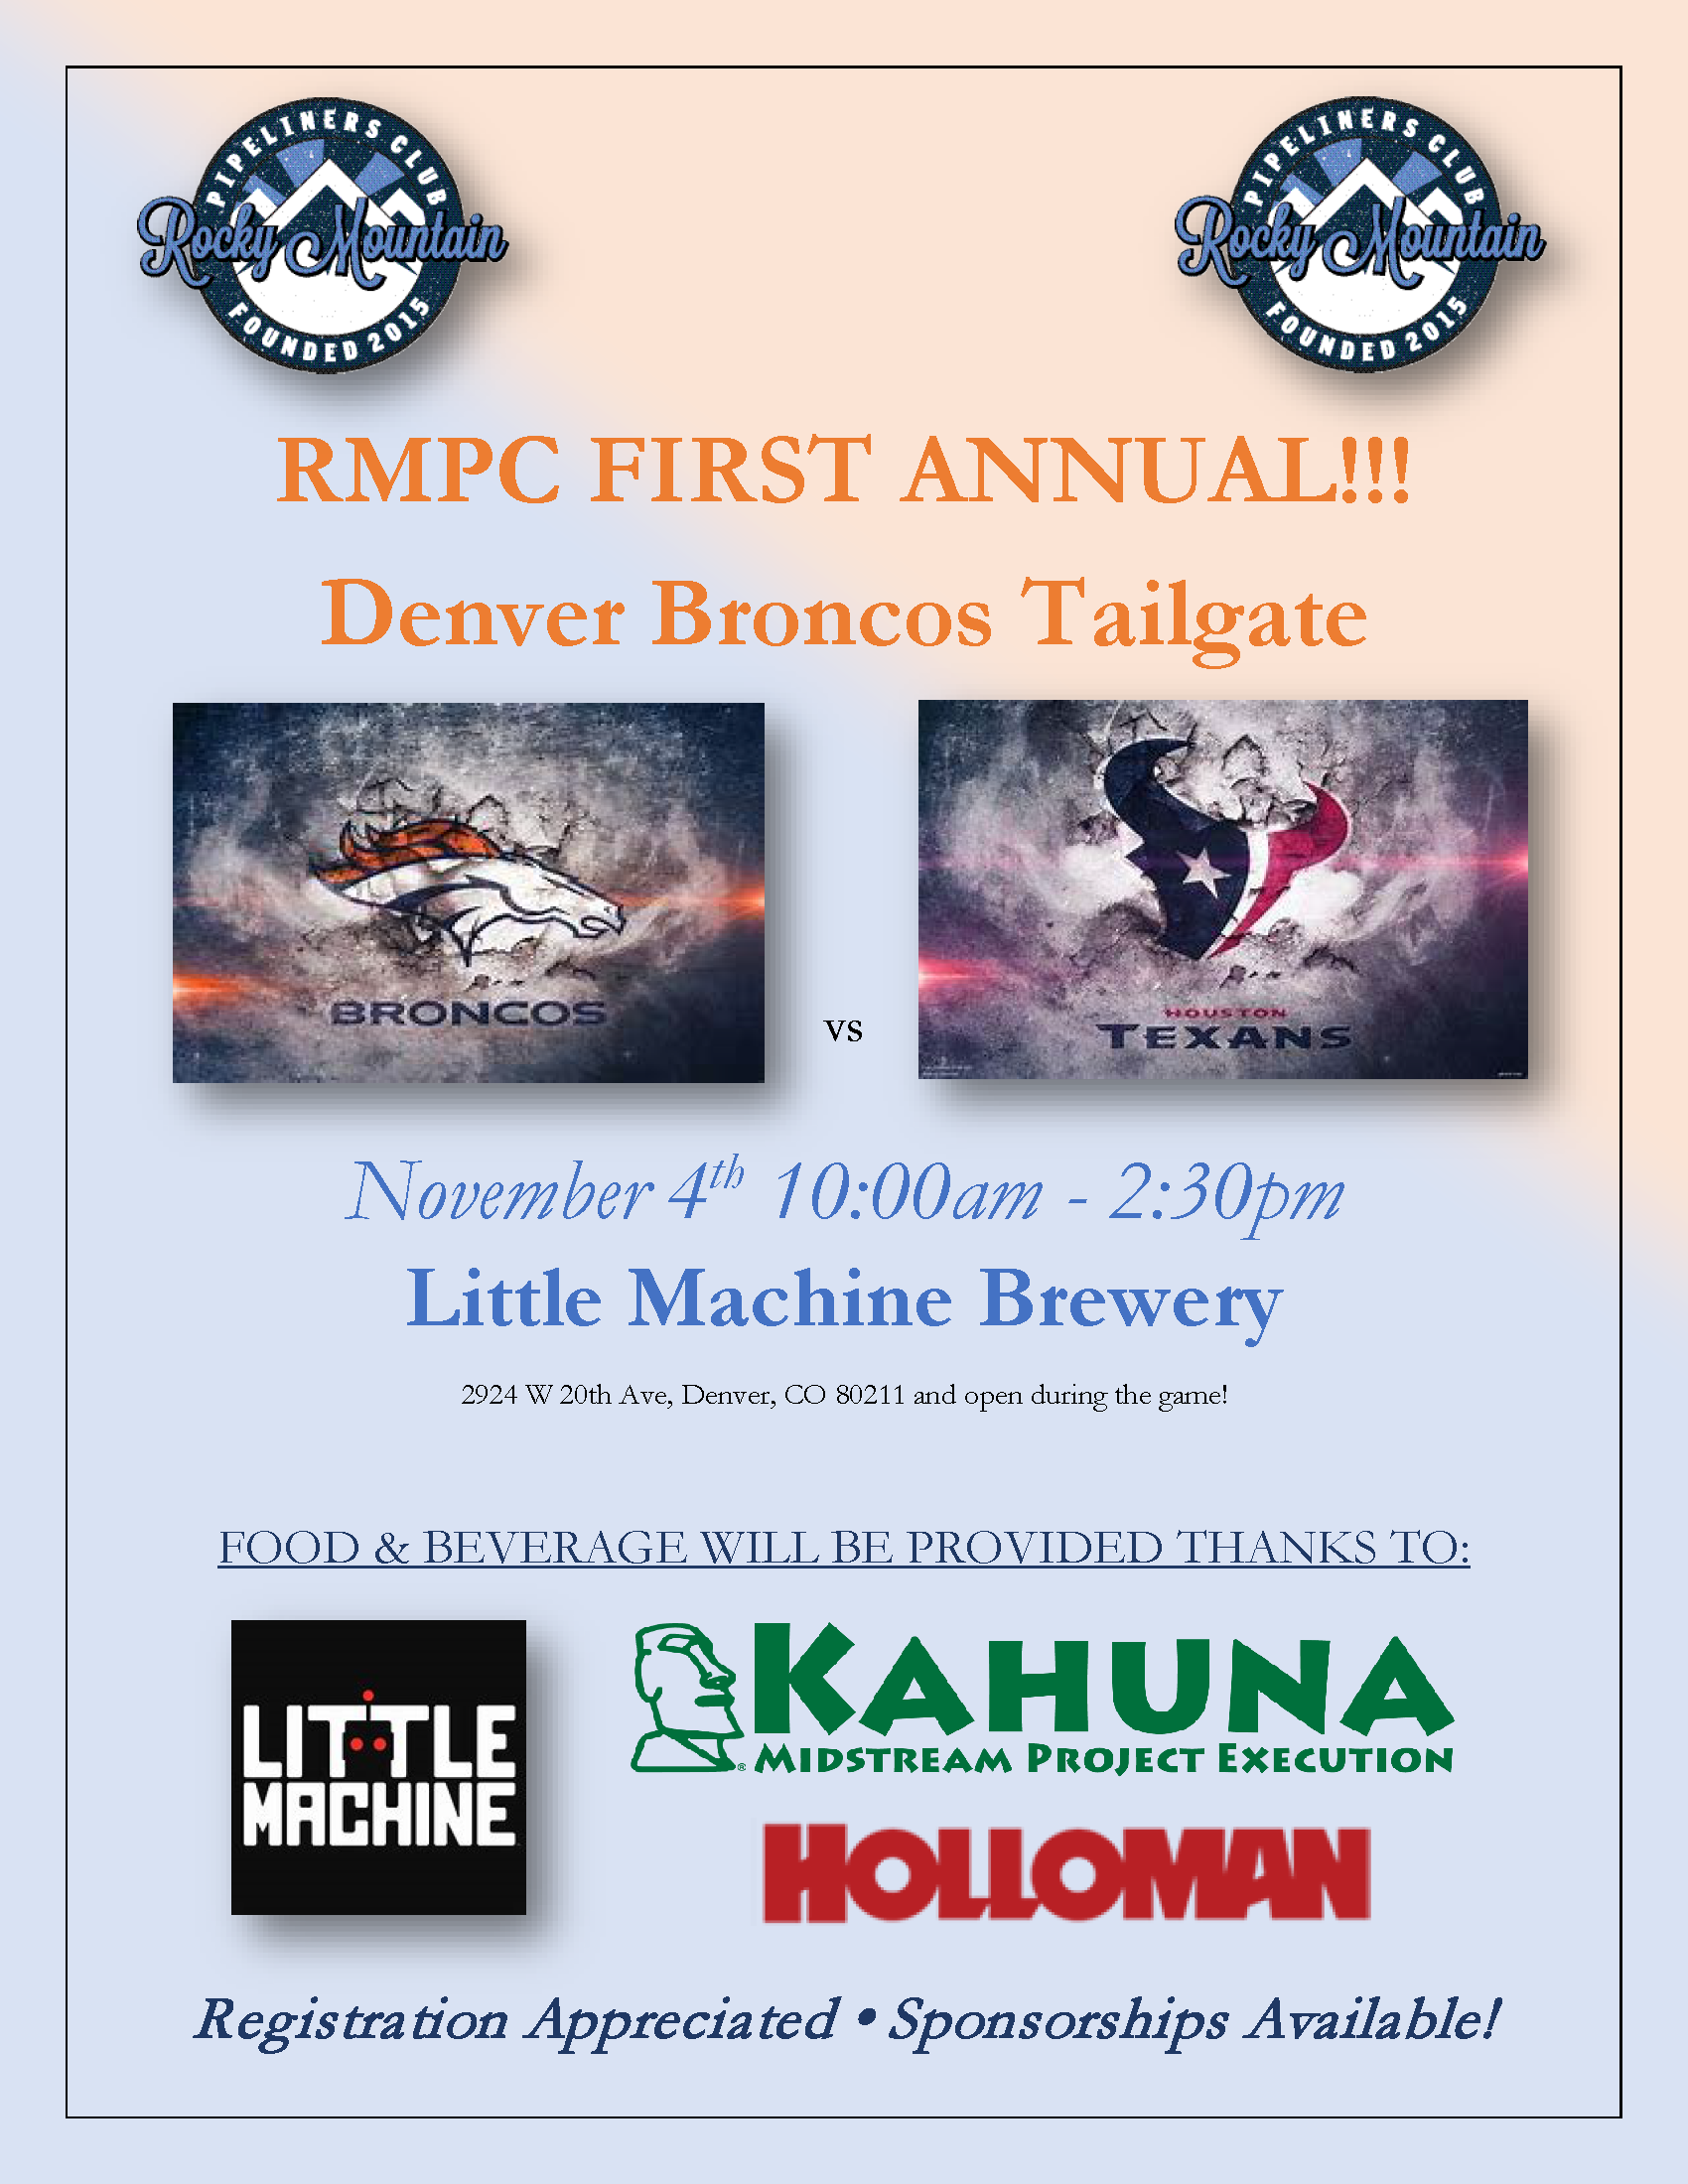 RMPC Tailgate Flyer6.png